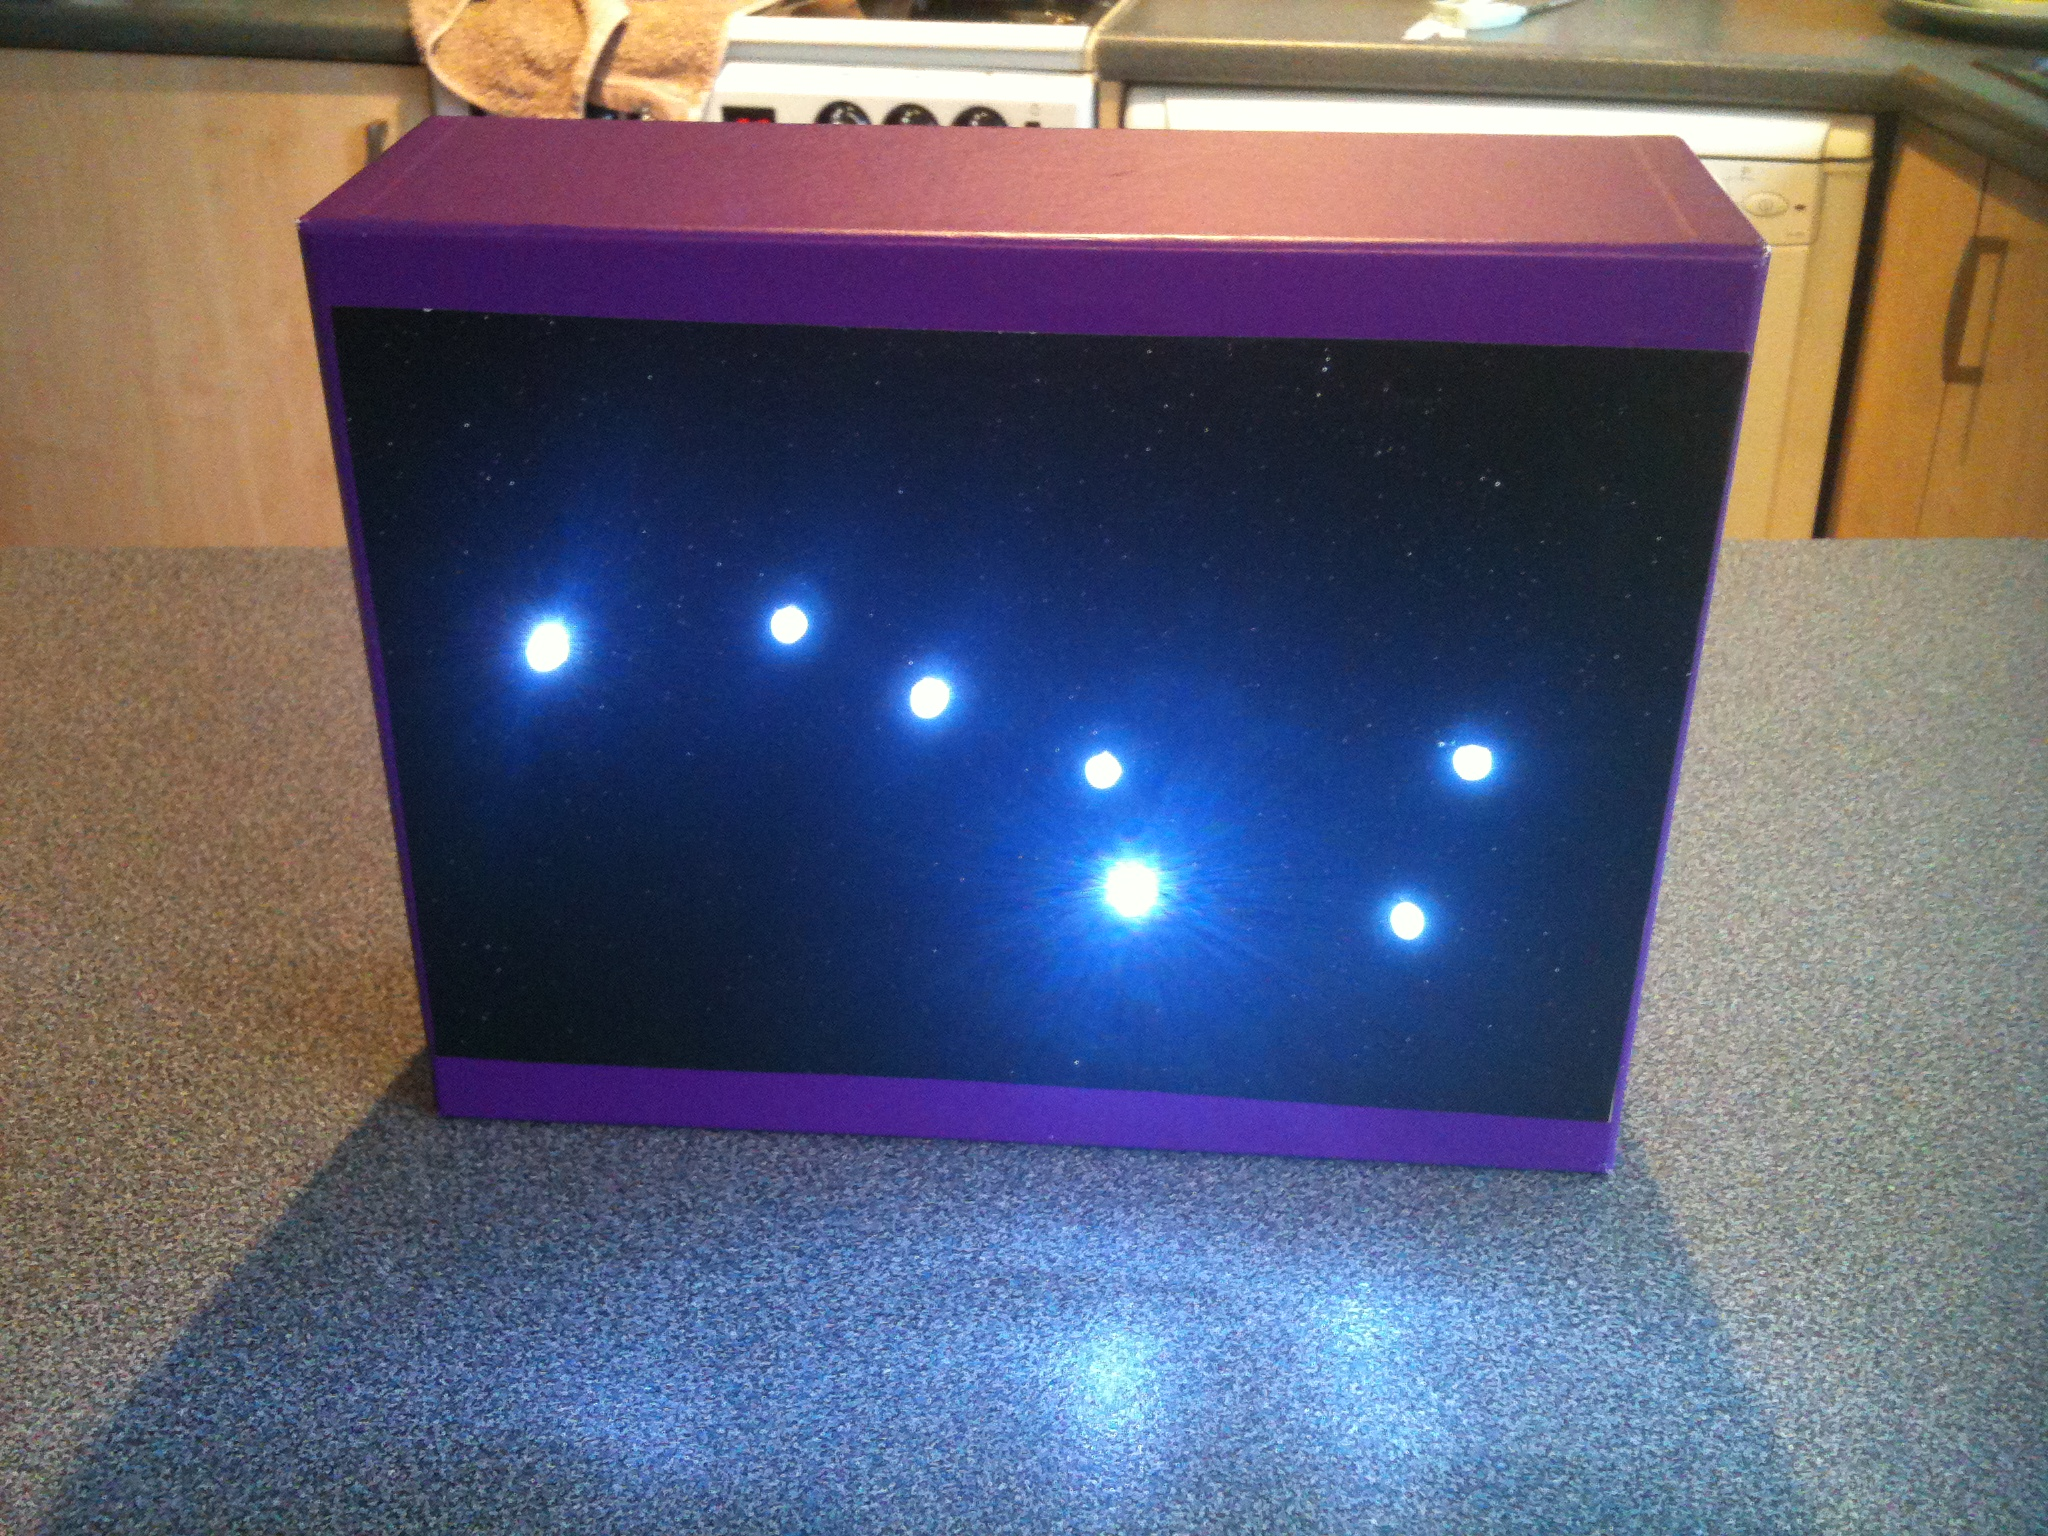 LED Star Constellation Light or night light